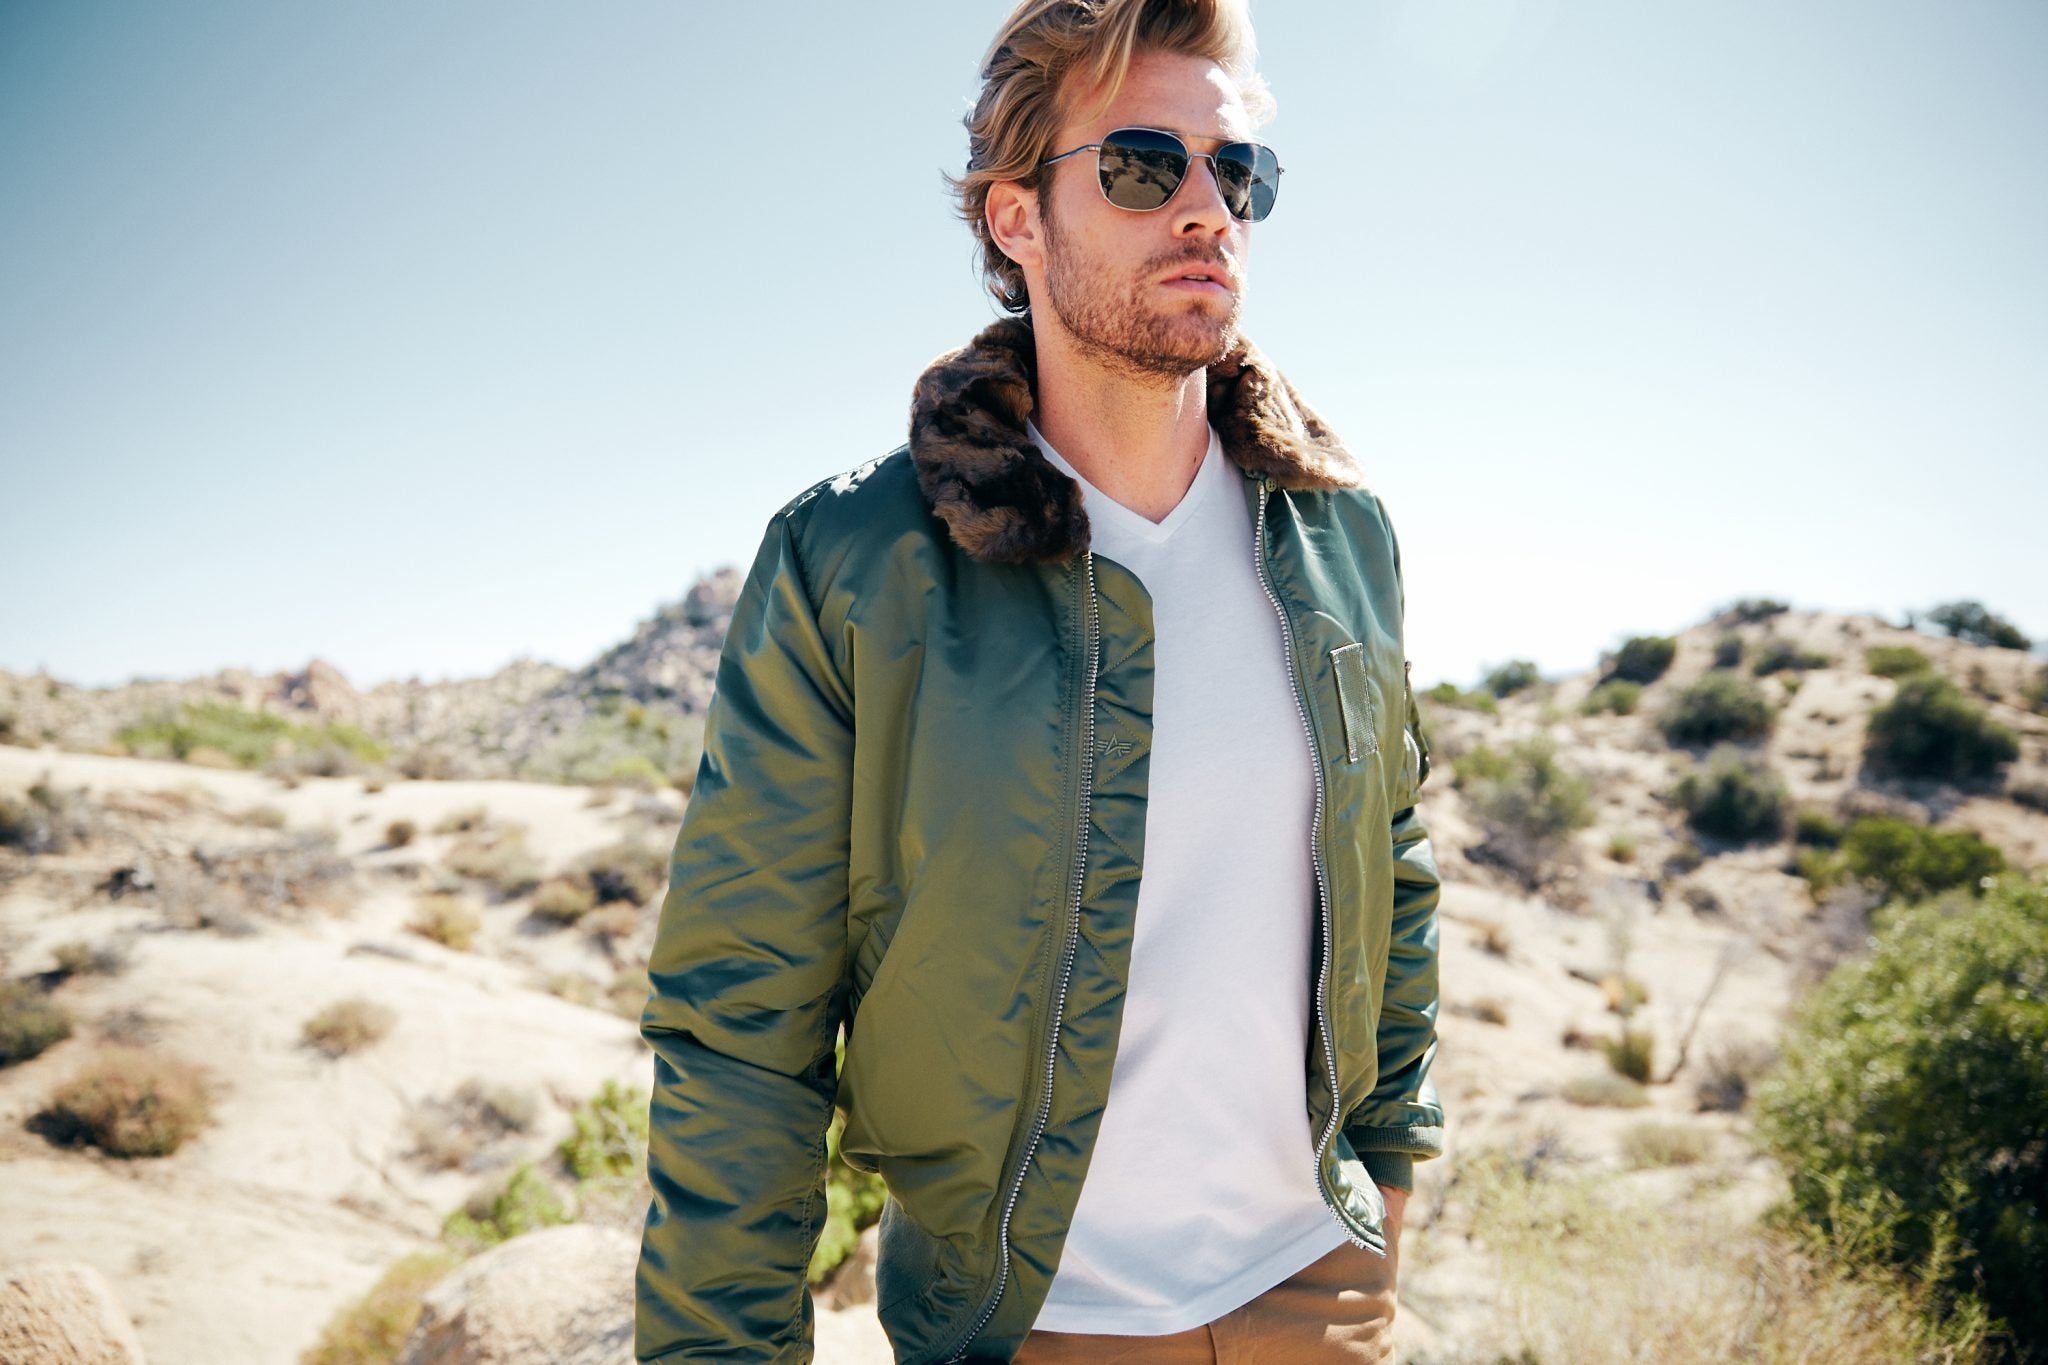 With aviators, wear jackets and solid colors with natural facial hair. | Randolph Engineering